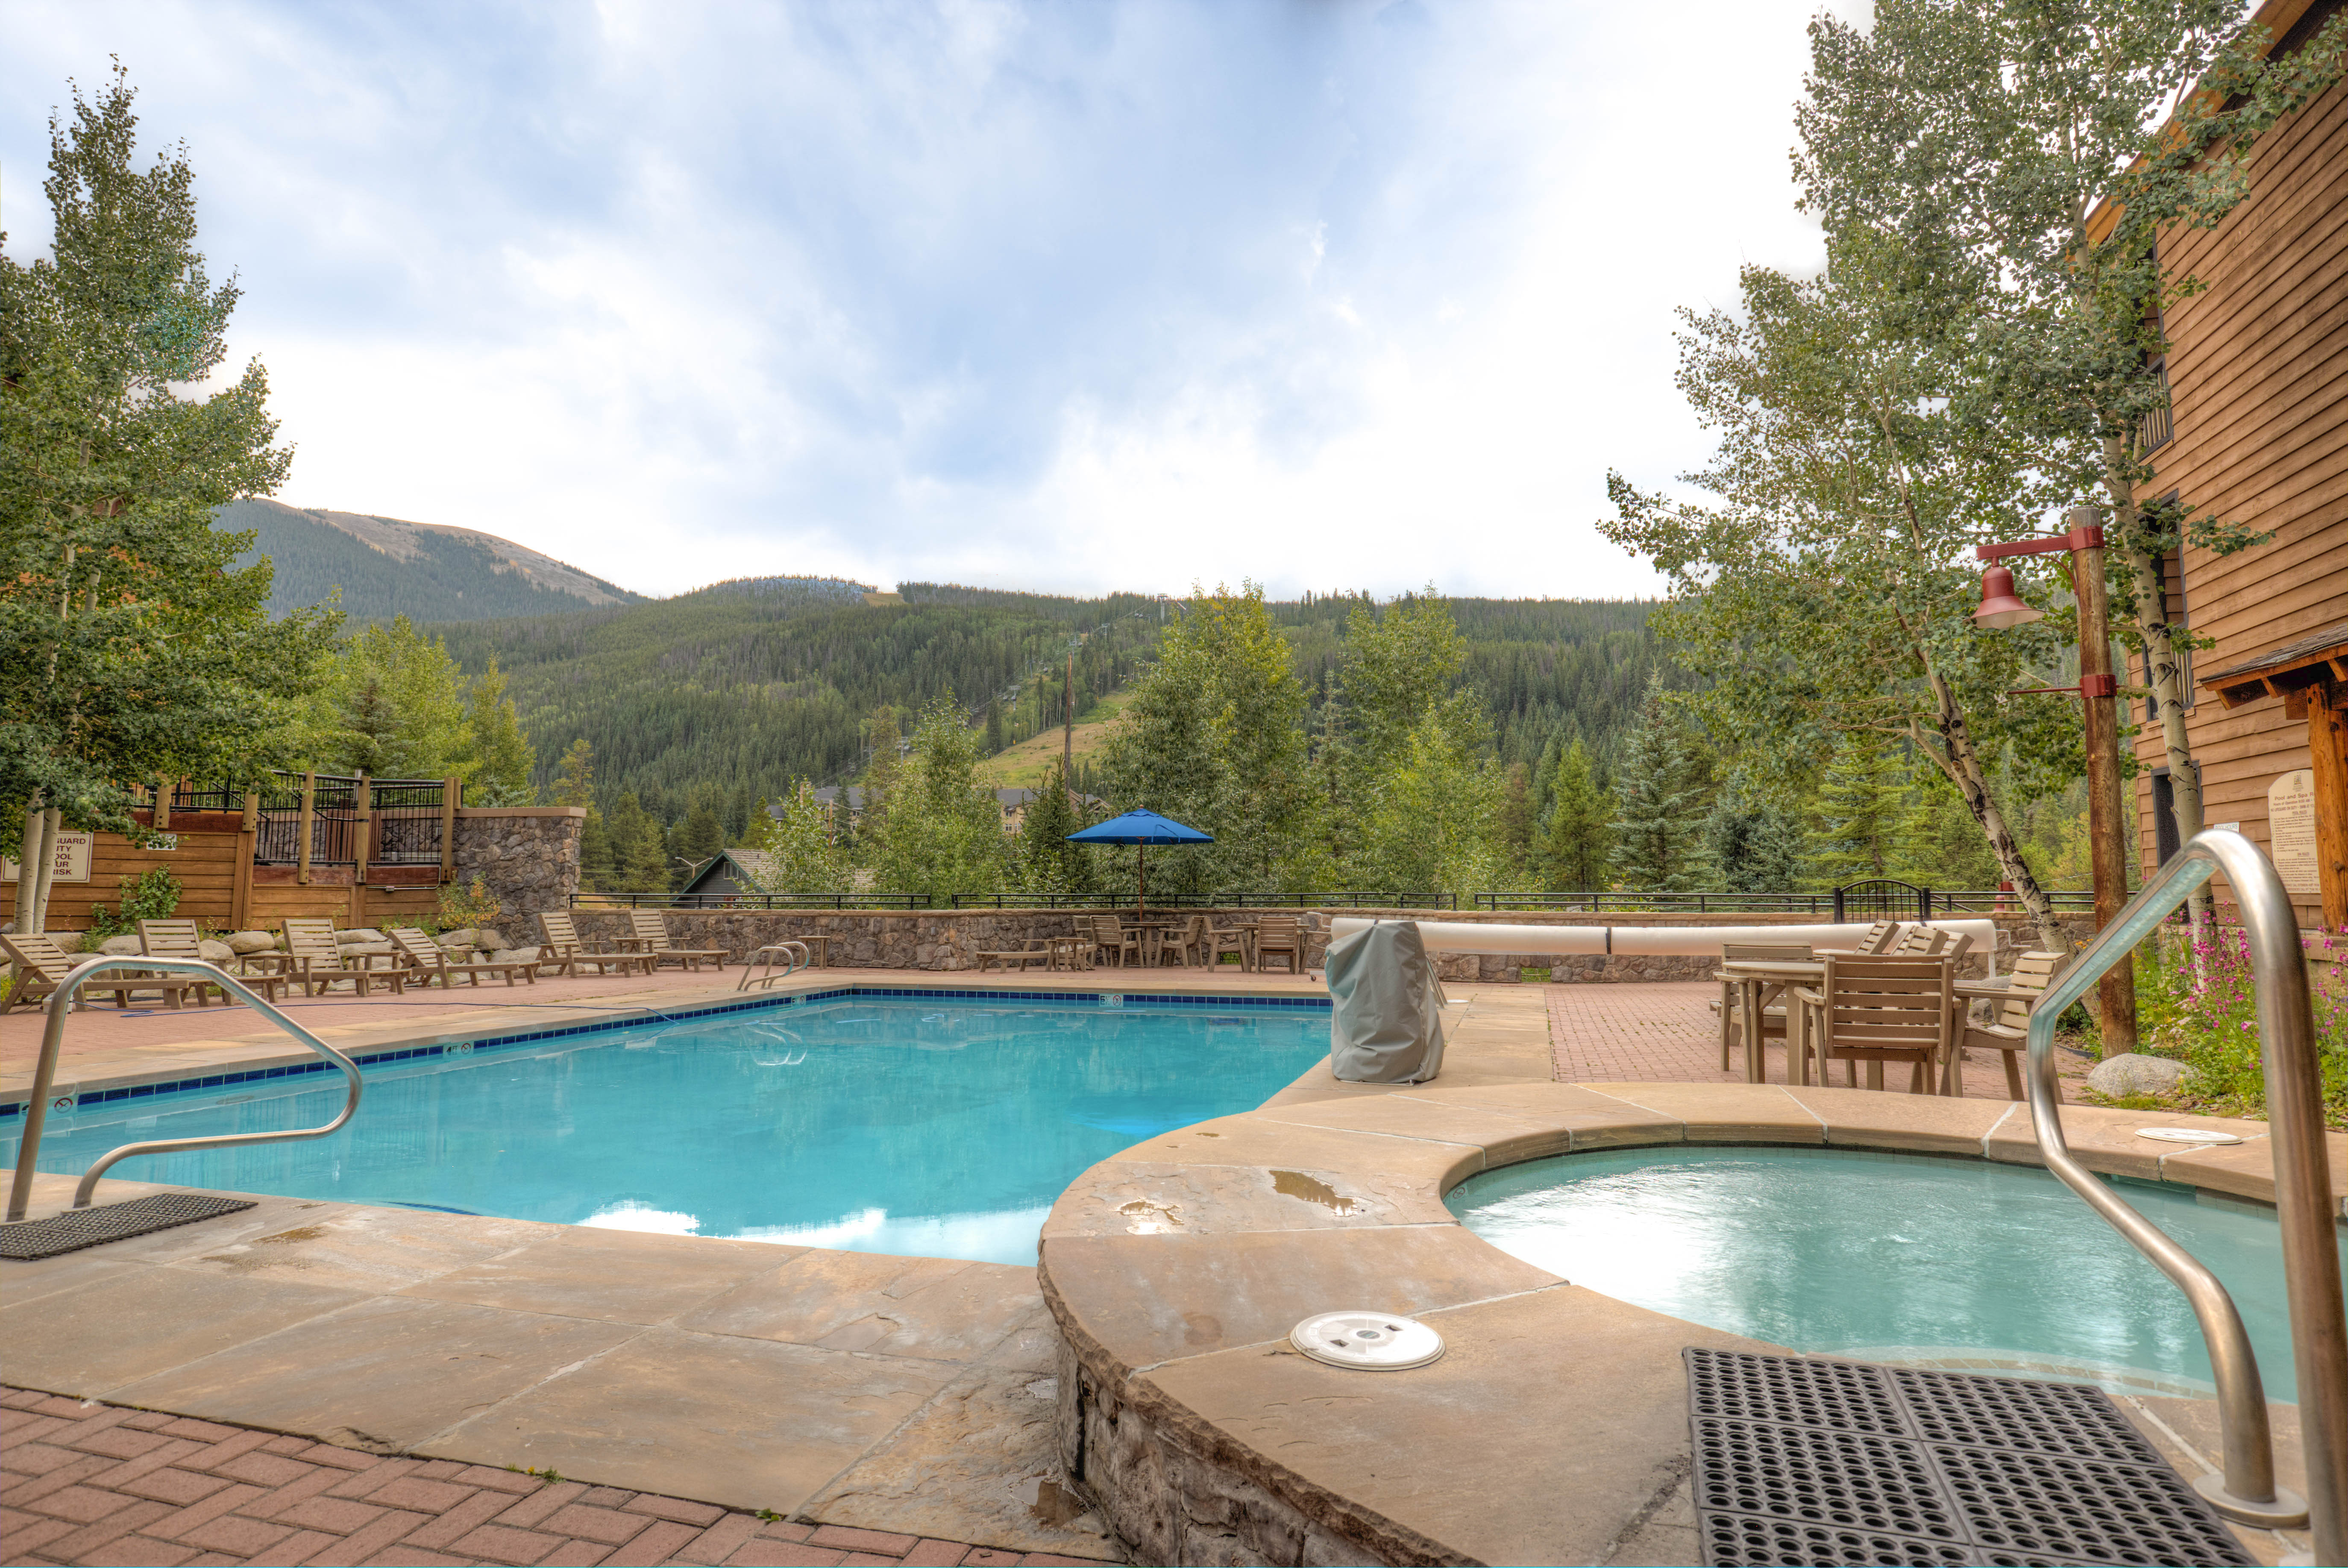 Guests at Trapper's Crossing have access to the pool and hot tubs at Dakota Lodge.